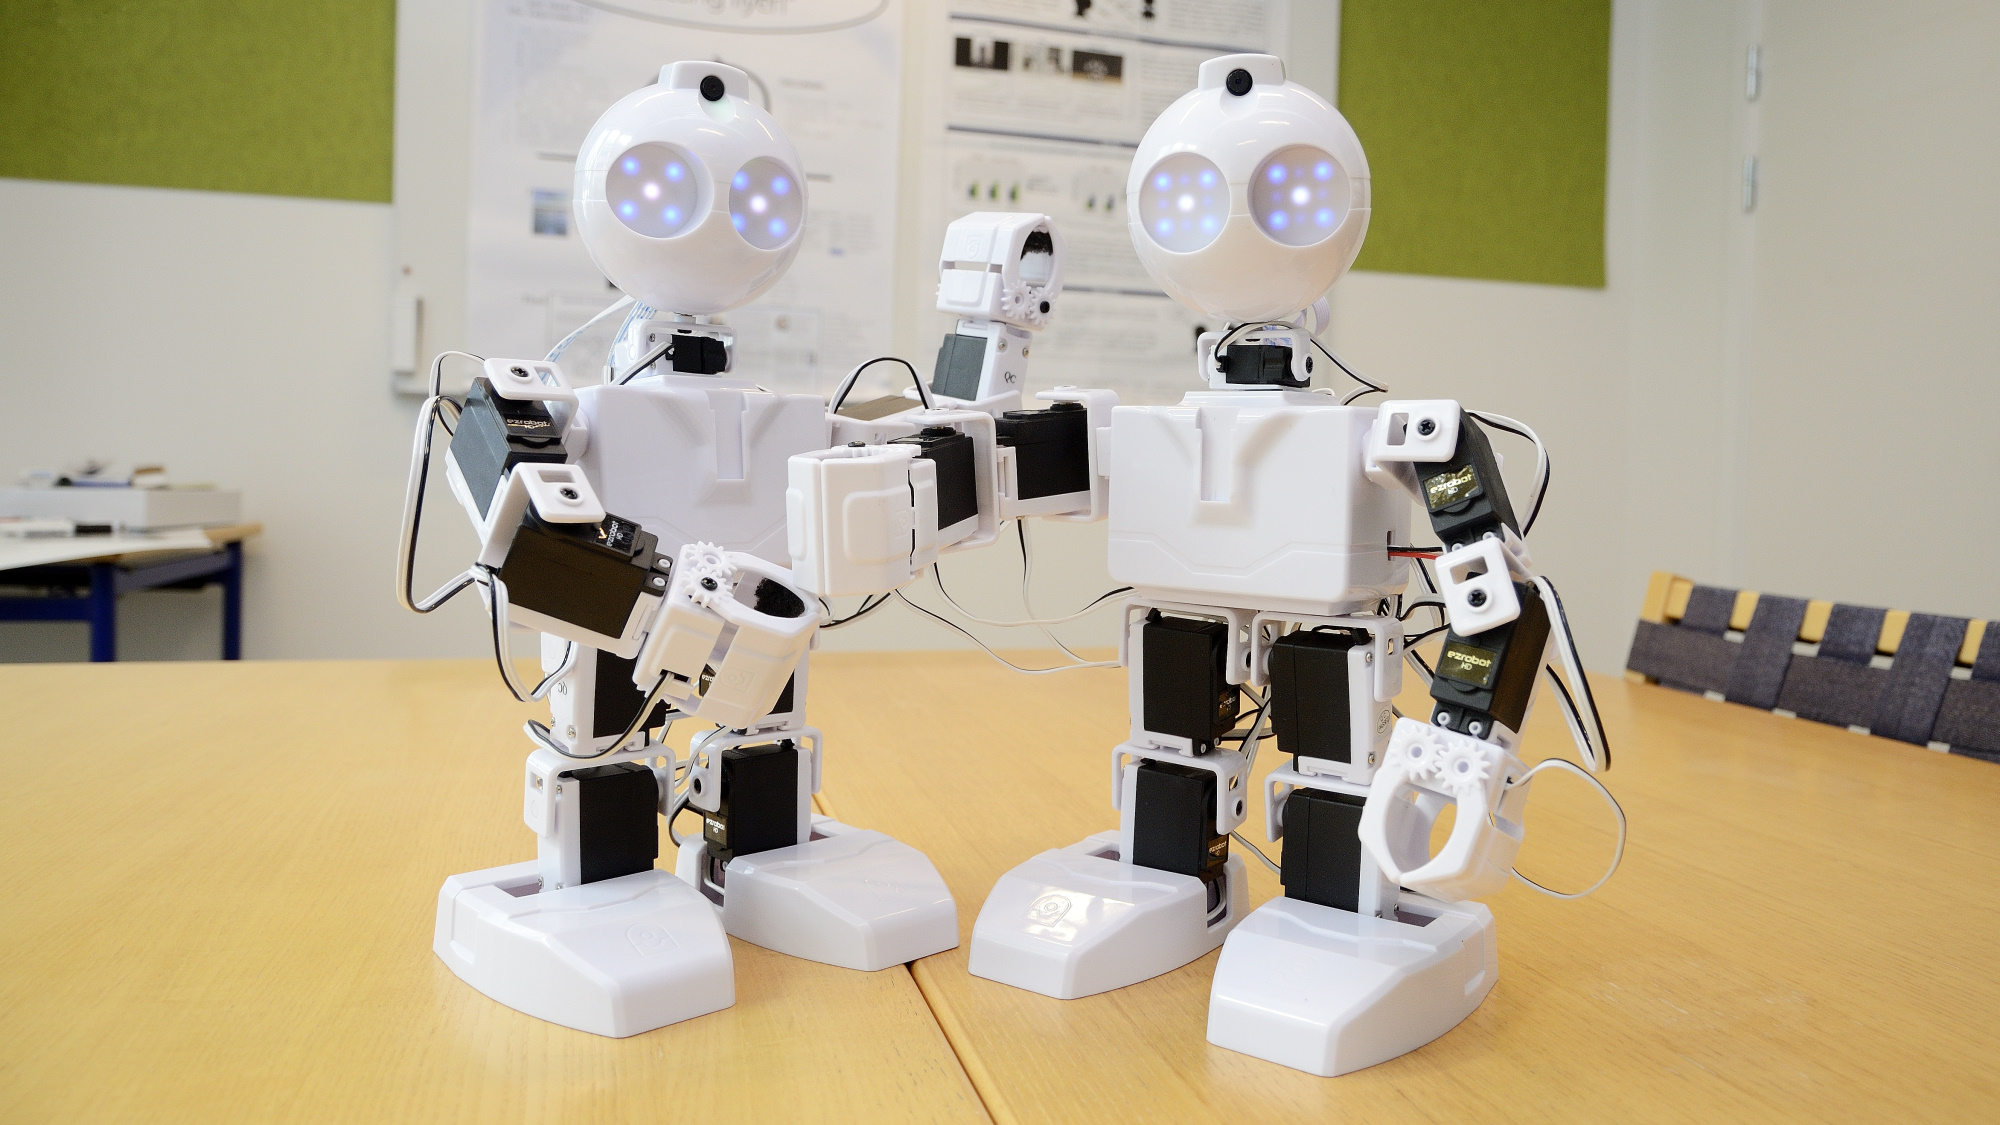 EZ robots are commonly used as a teaching platform on robotics.